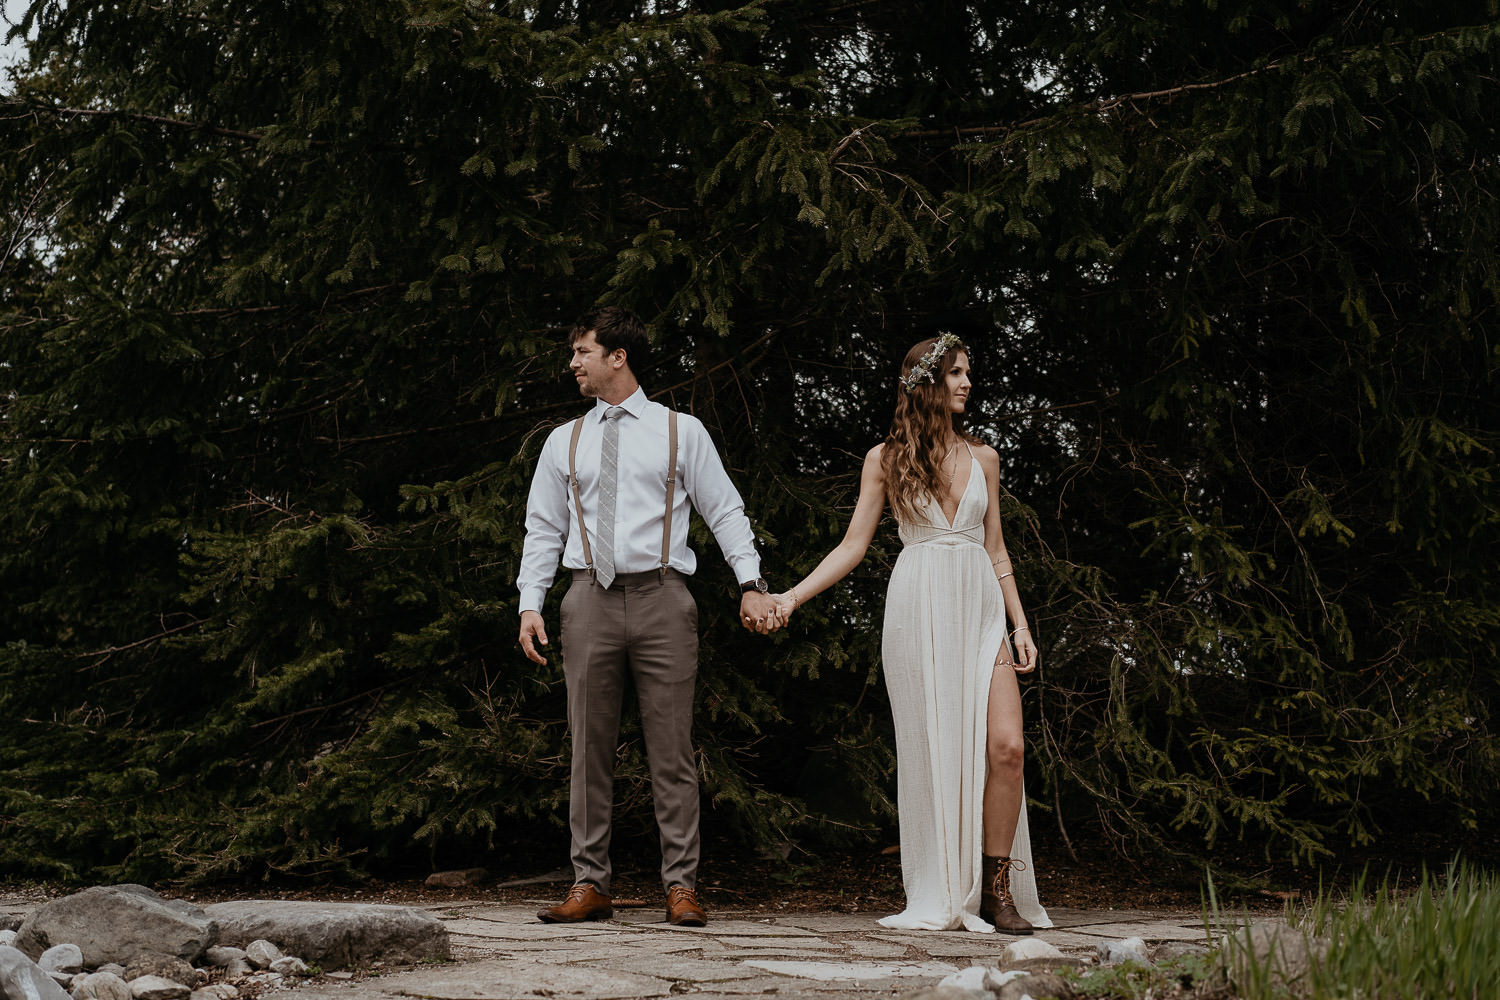 Sam + Kennie - Bellamere Winery Wedding, London Ontario